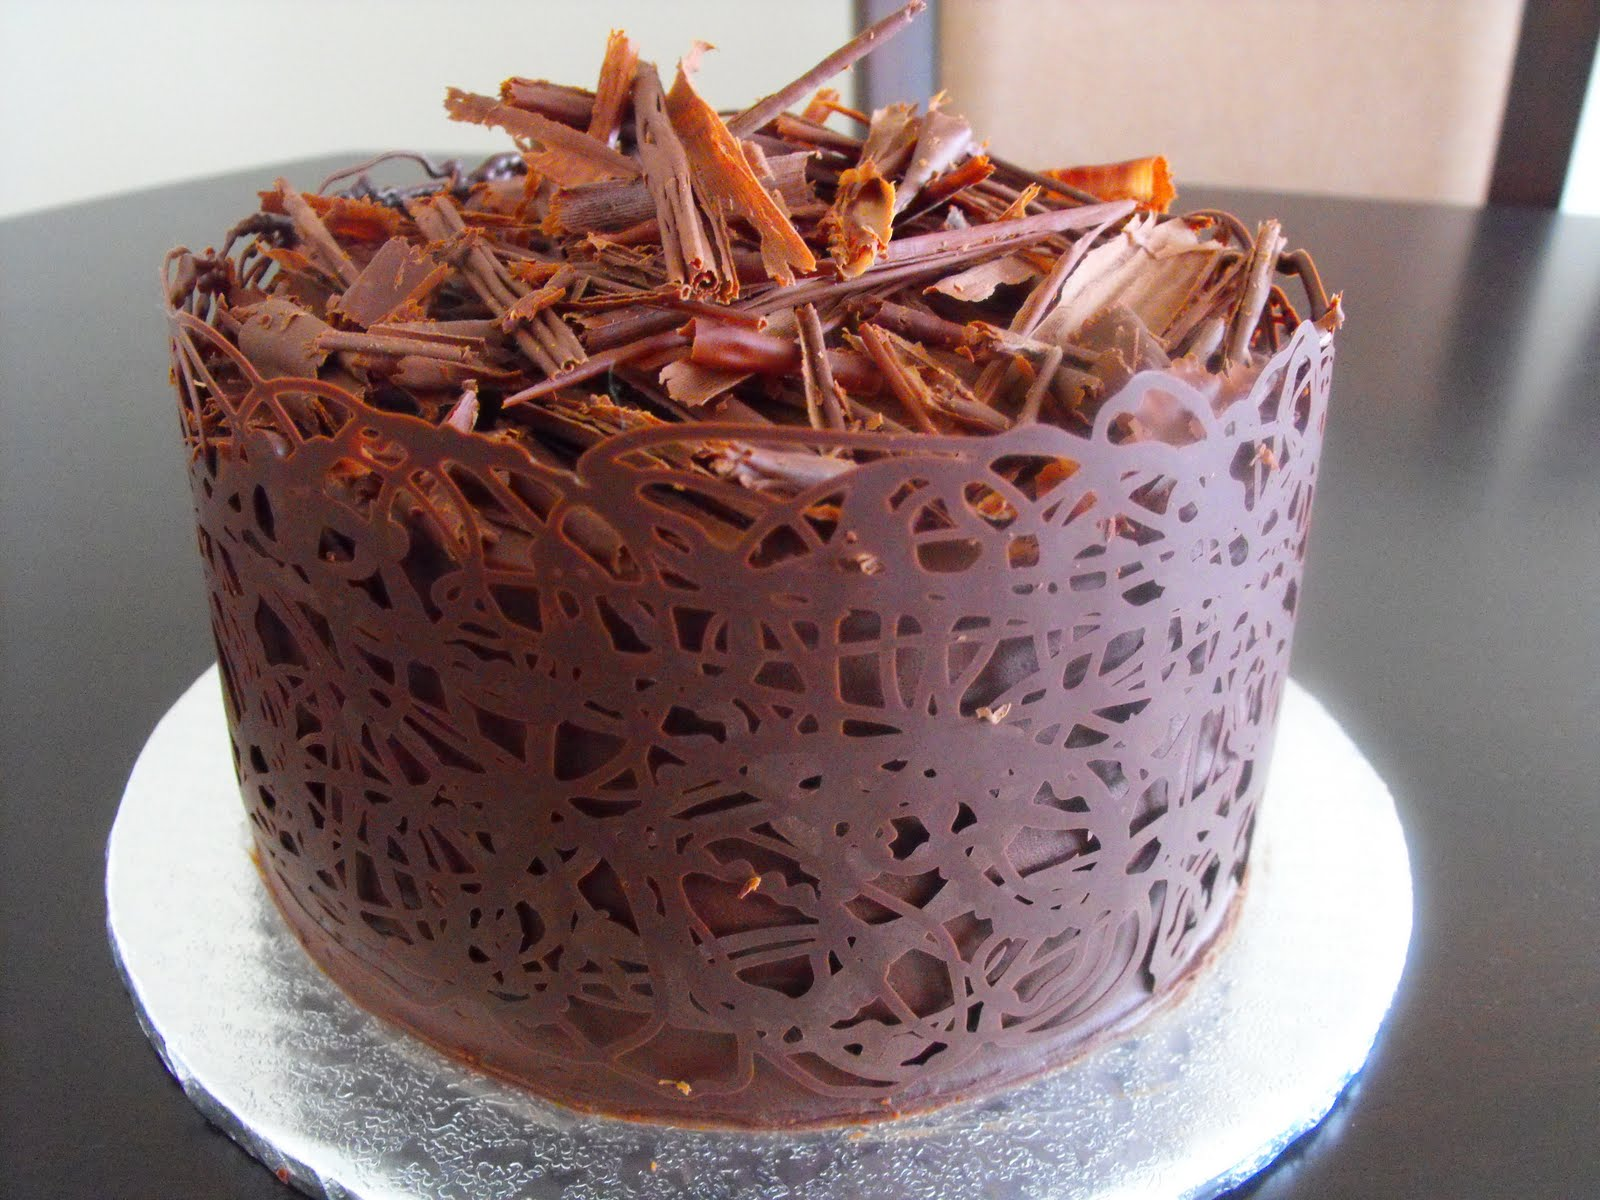 Cake Decoration Of Chocolate : A Little Taste of Heaven.....in a Cake: Chocolate Lattice Band